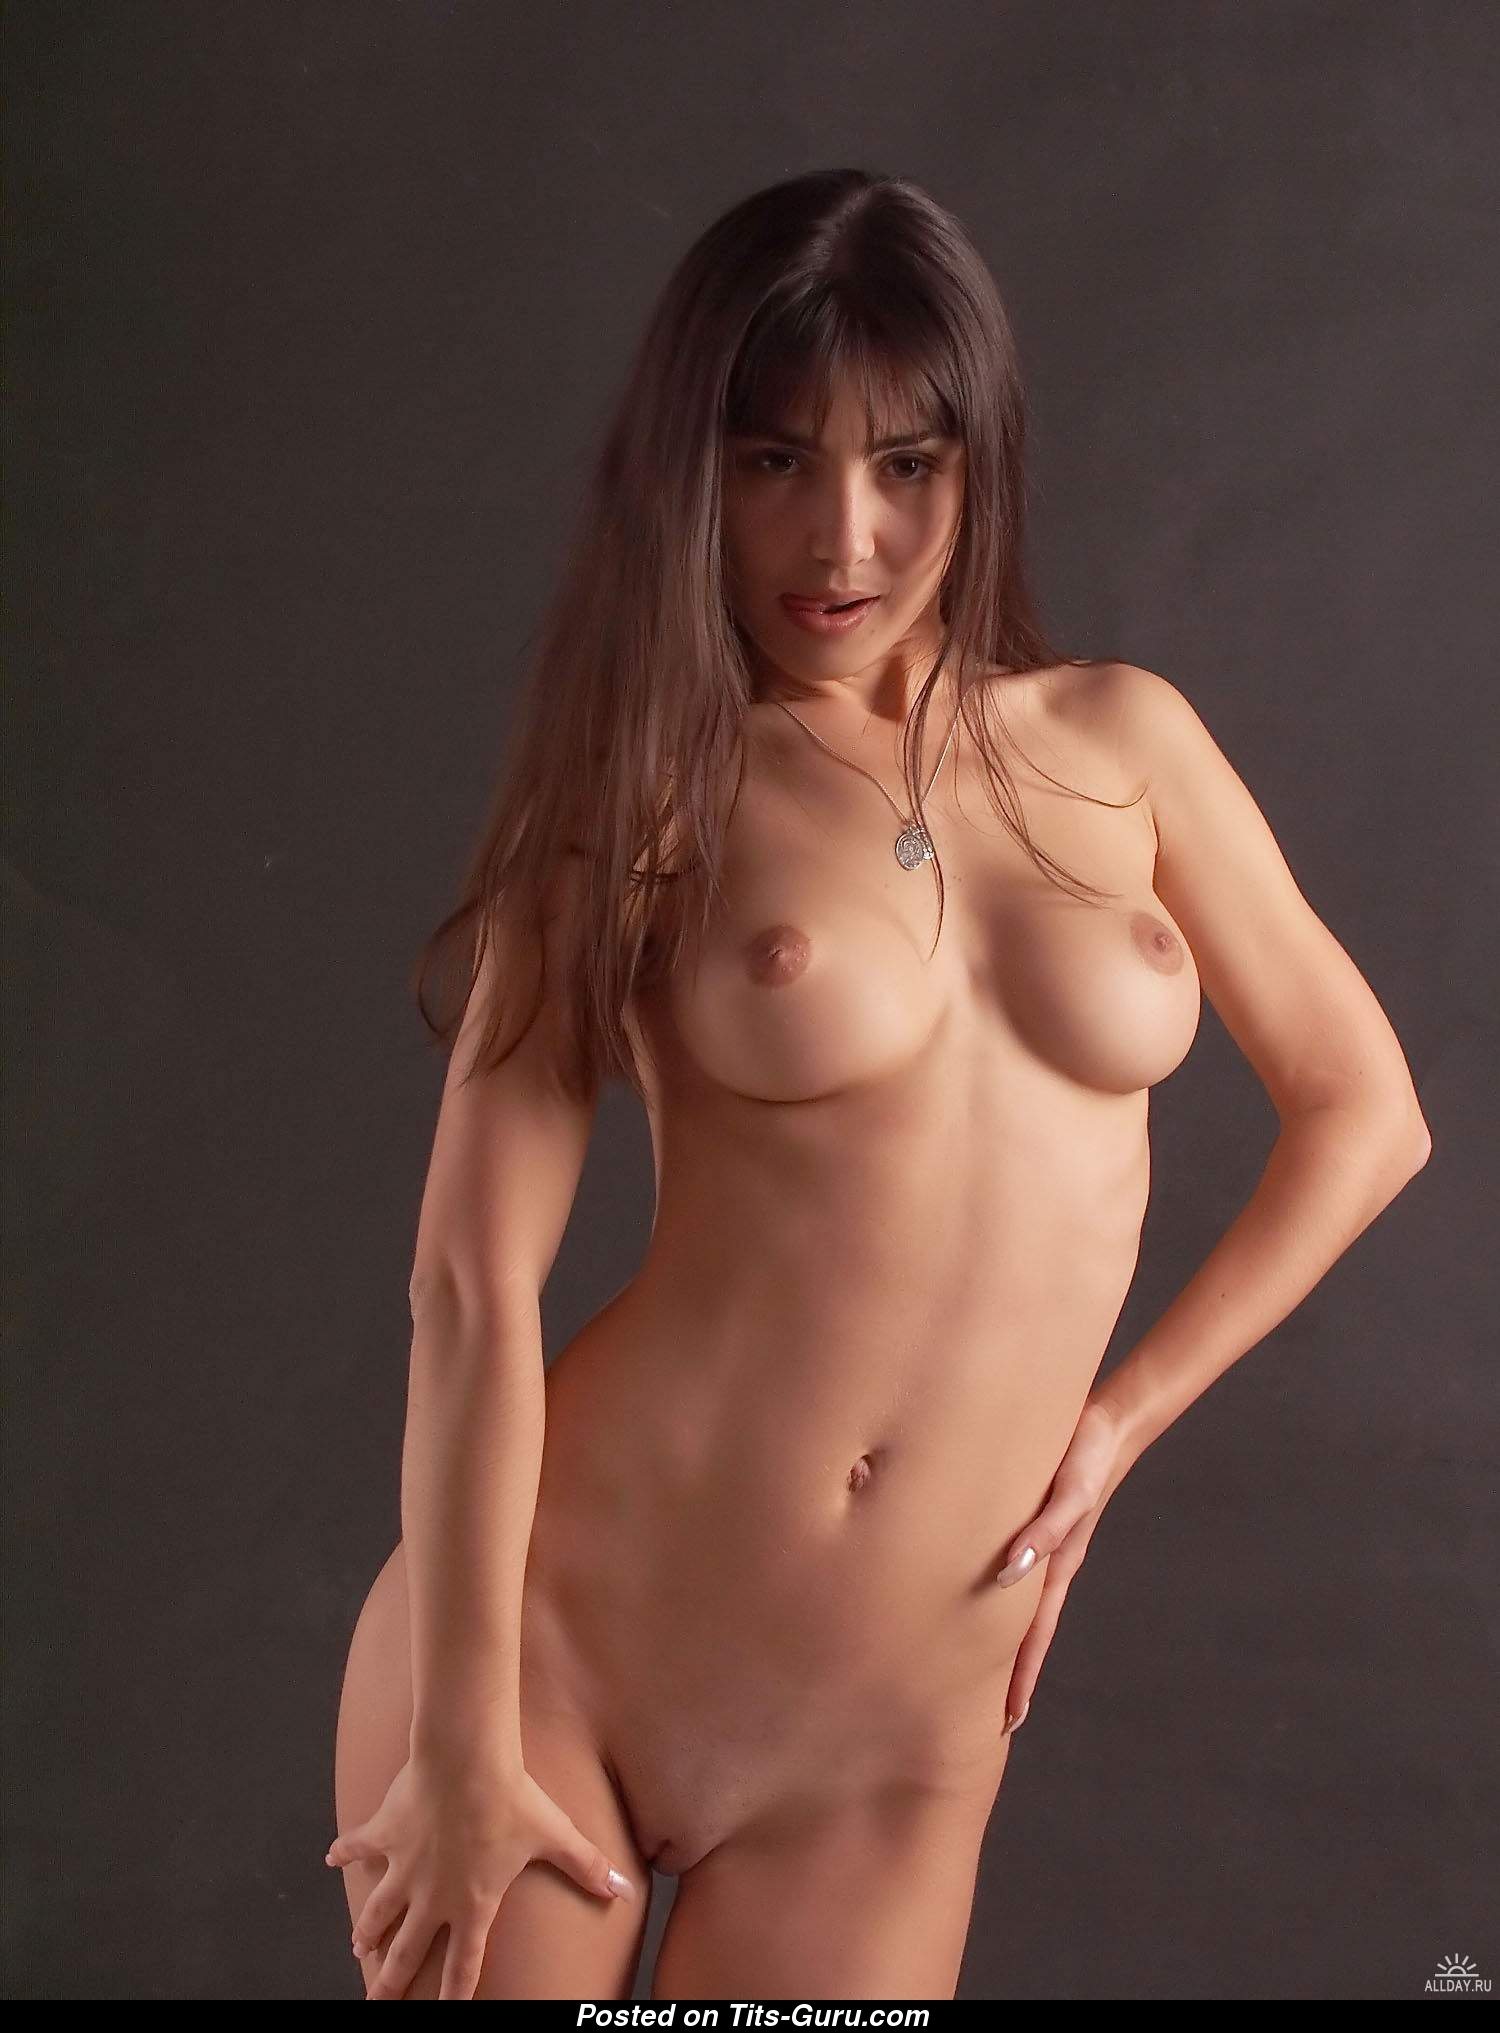 Exotic Russian Girl Nudity By Amour Angels